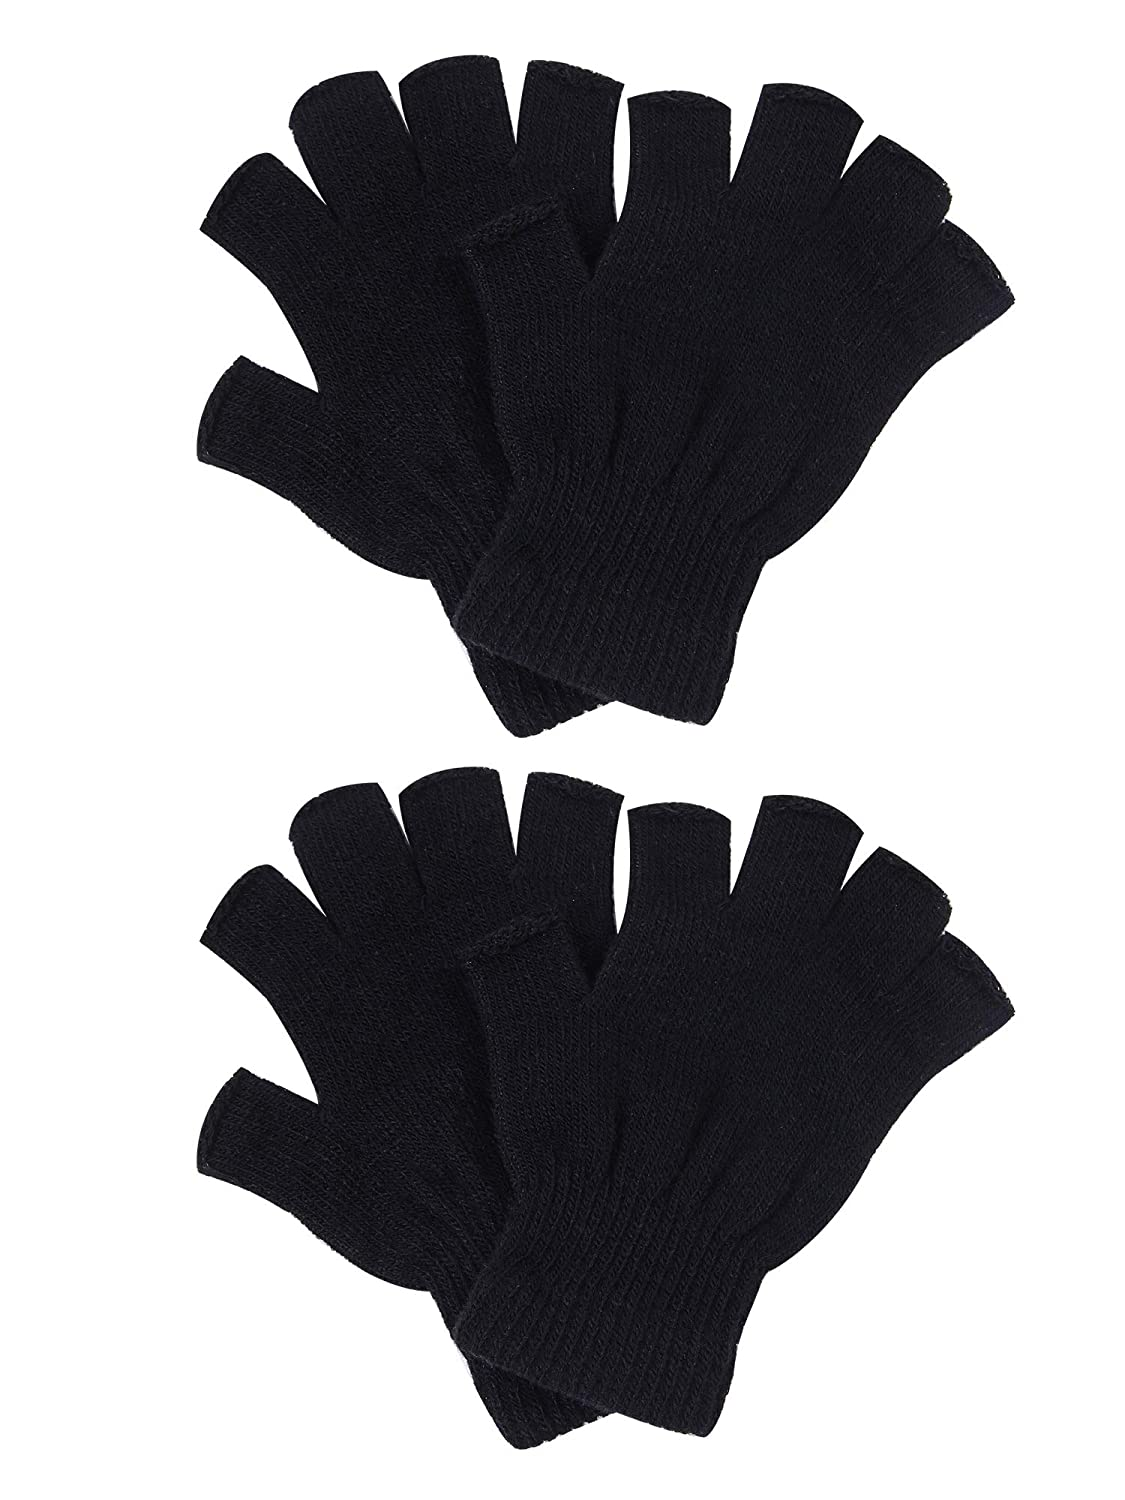 Men or Teens Cooraby 2 Pairs Unisex Warm Half Finger Gloves Winter Stretchy Fingerless Gloves Typing Gloves for Women